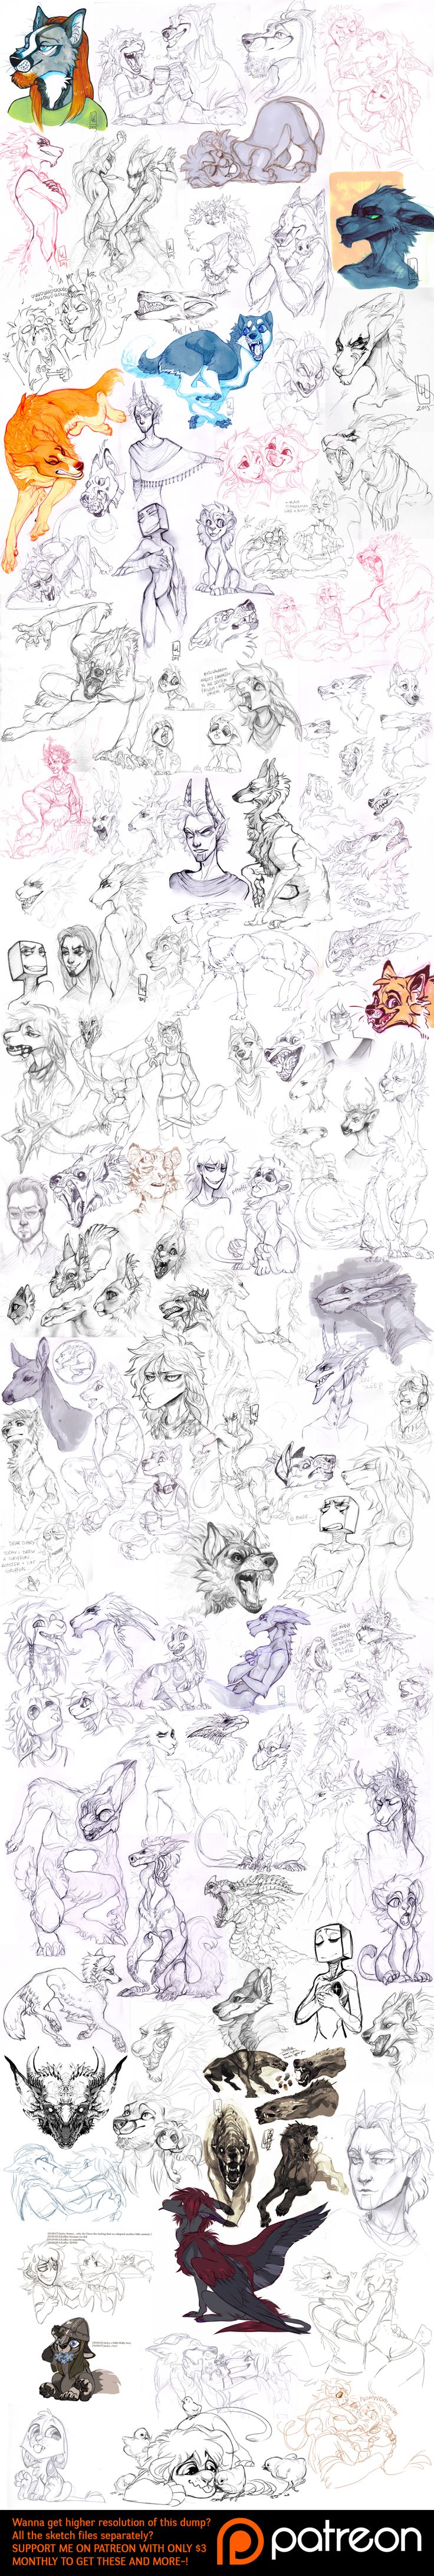 Sketch dump 60 by LiLaiRa on DeviantArt